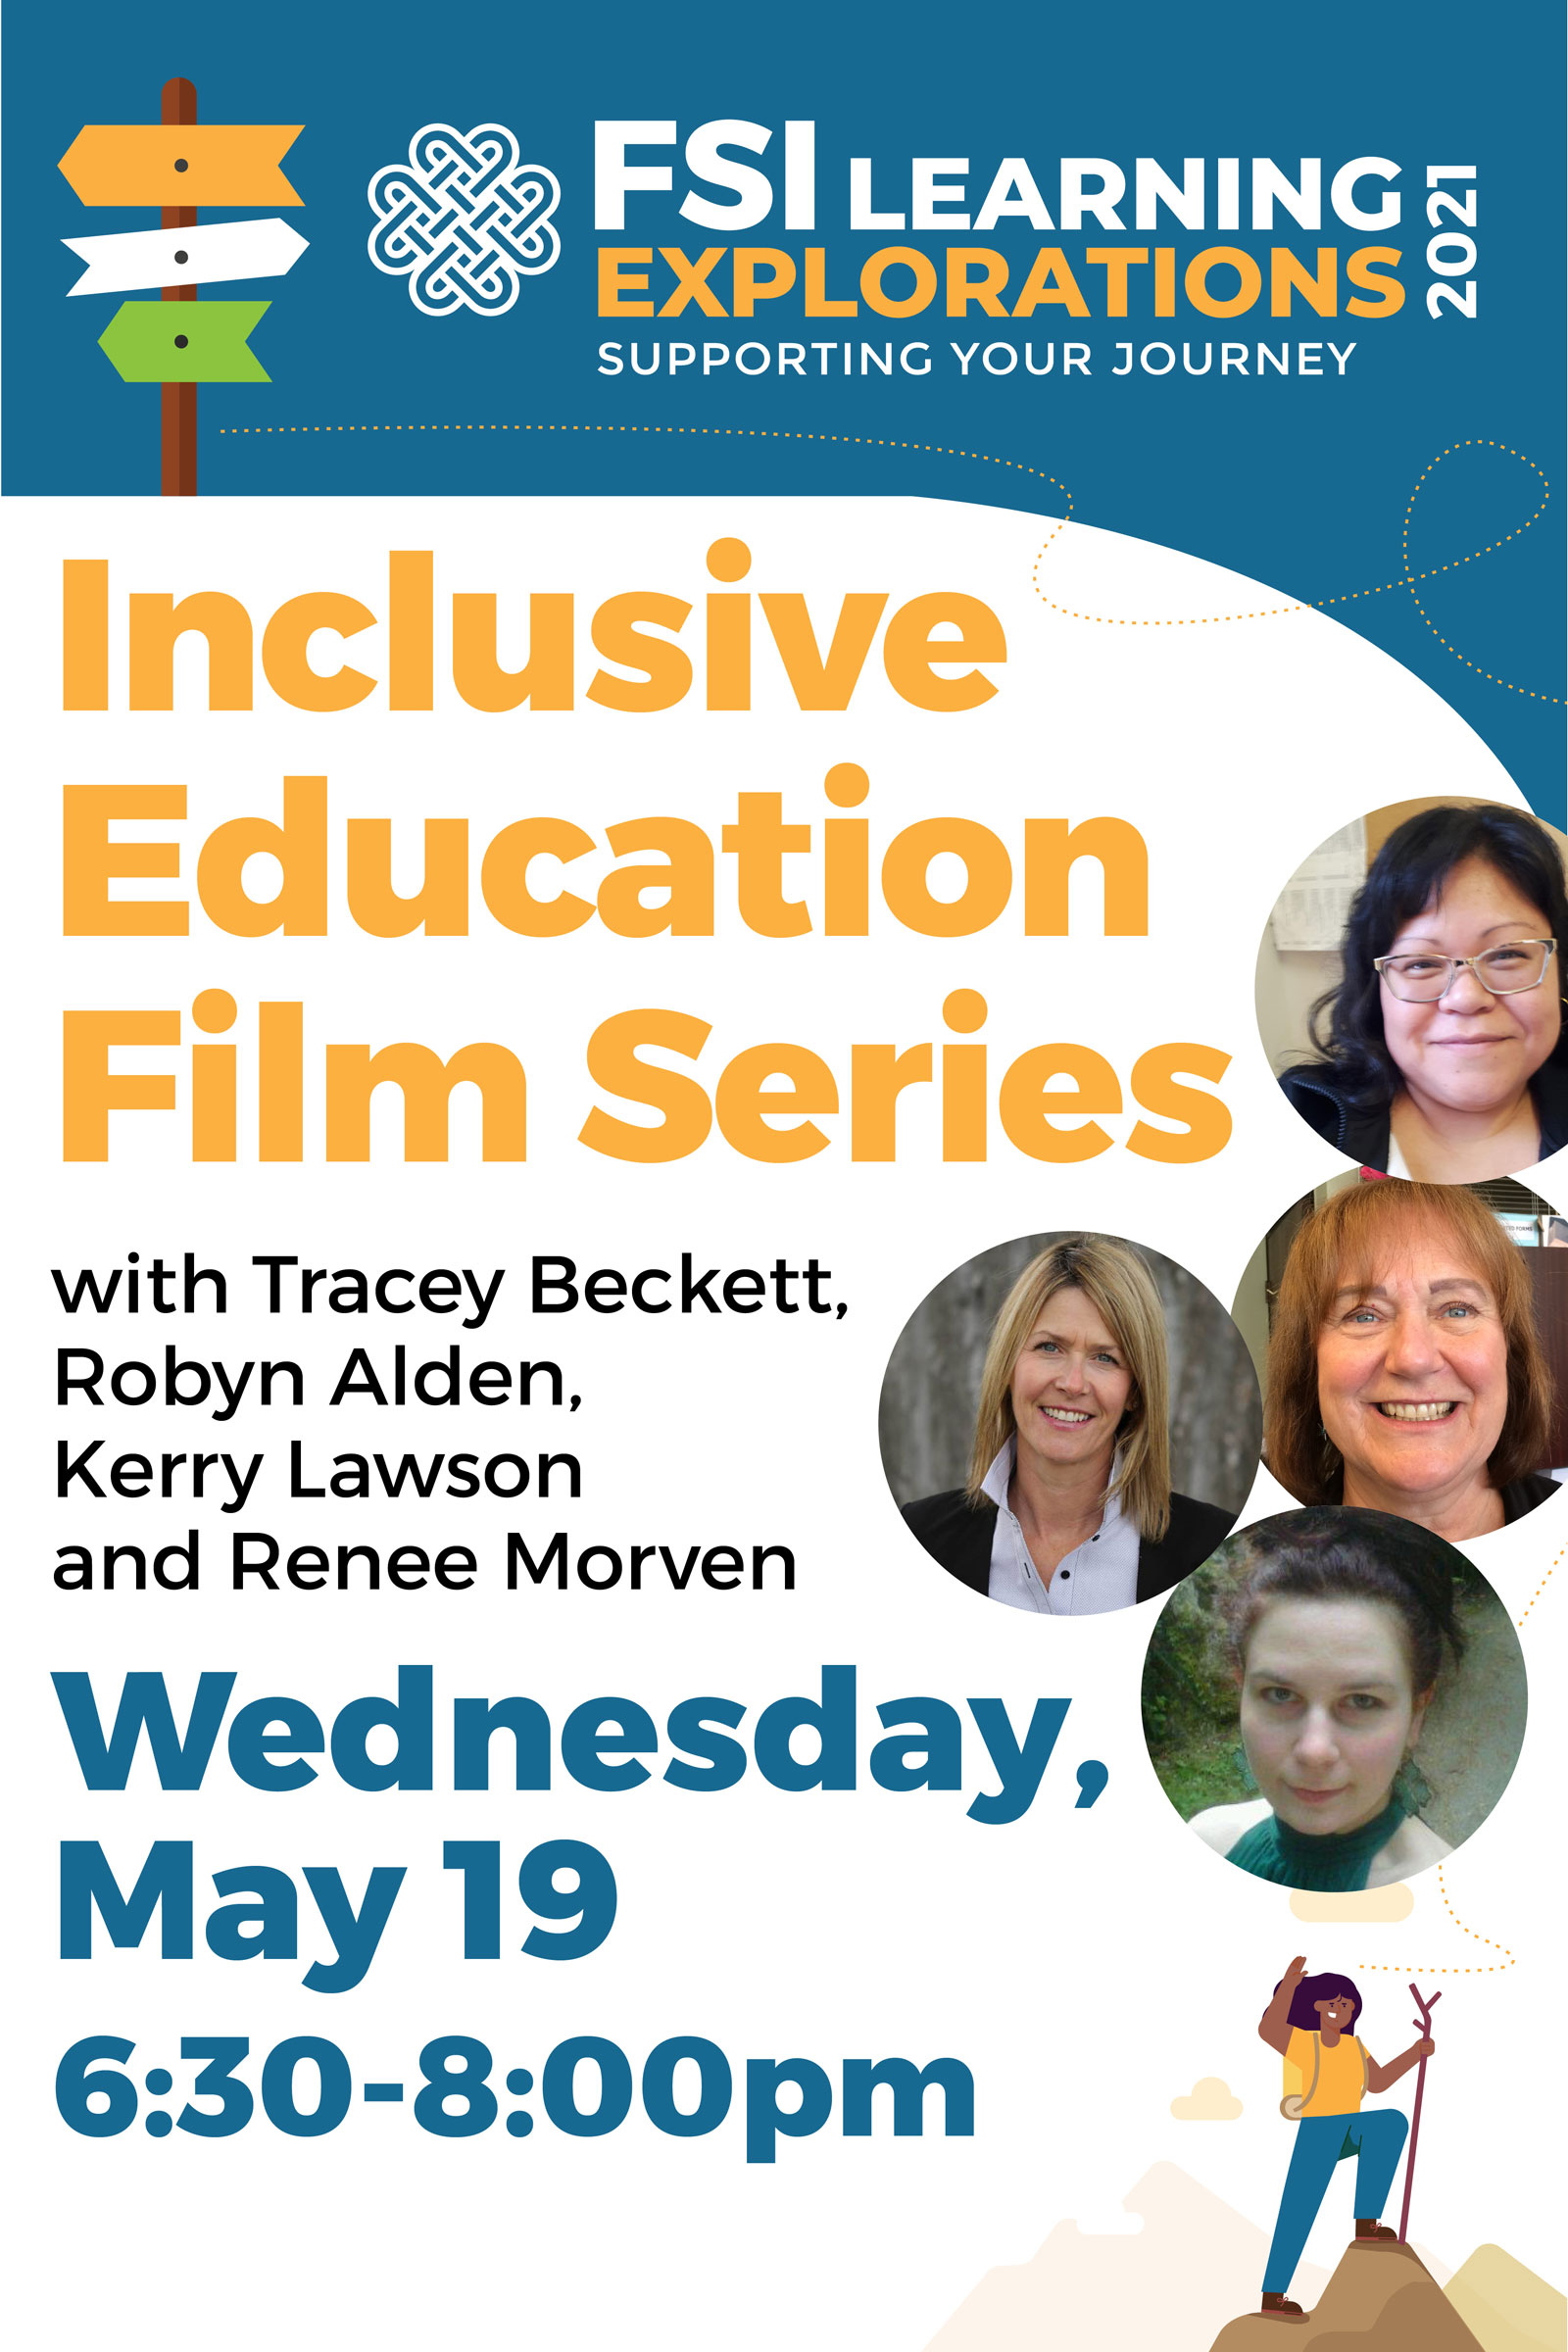 FSI Learning Explorations - Inclusive Education Film Series